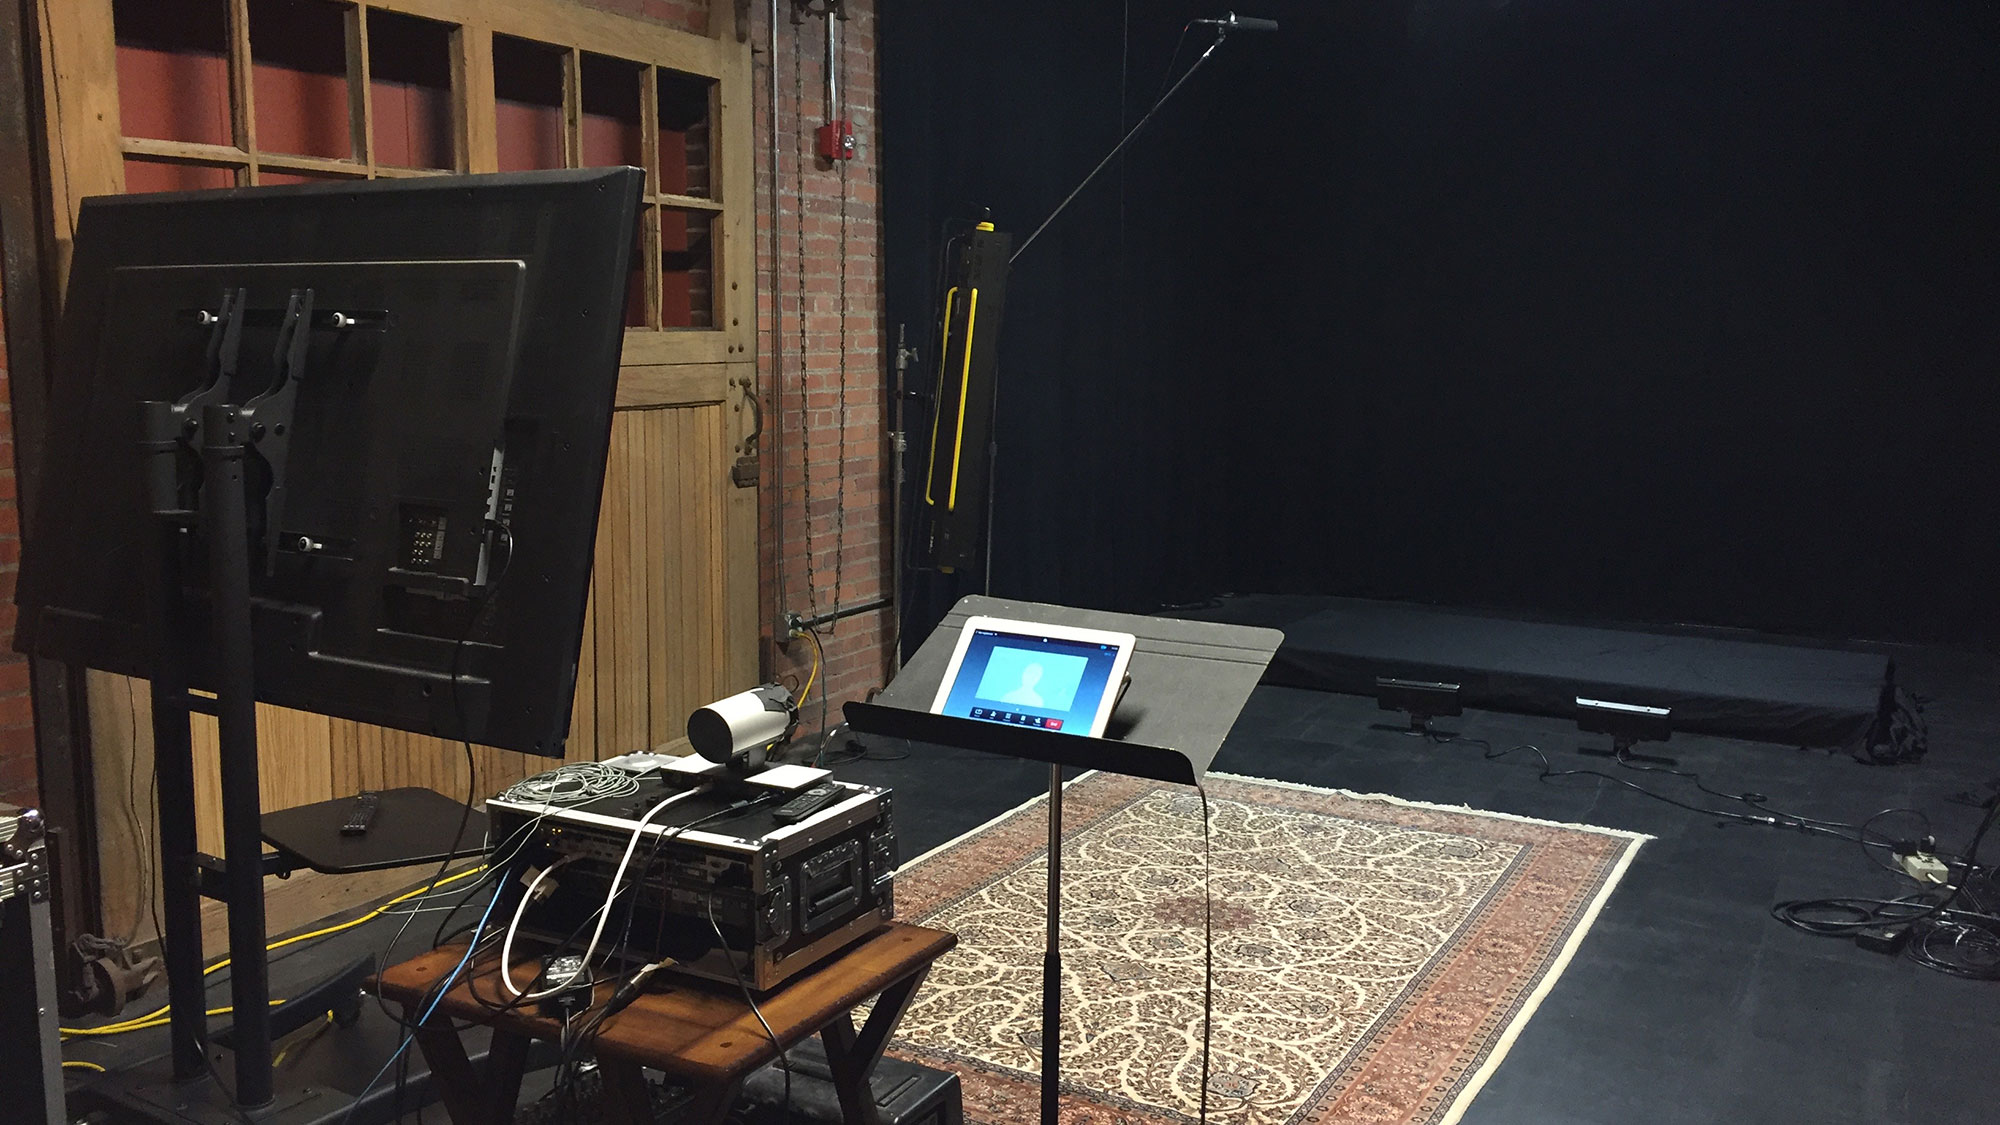 Filming can be done anywhere in the world. Here is a set-up at our headquarters in Cleveland, Ohio.